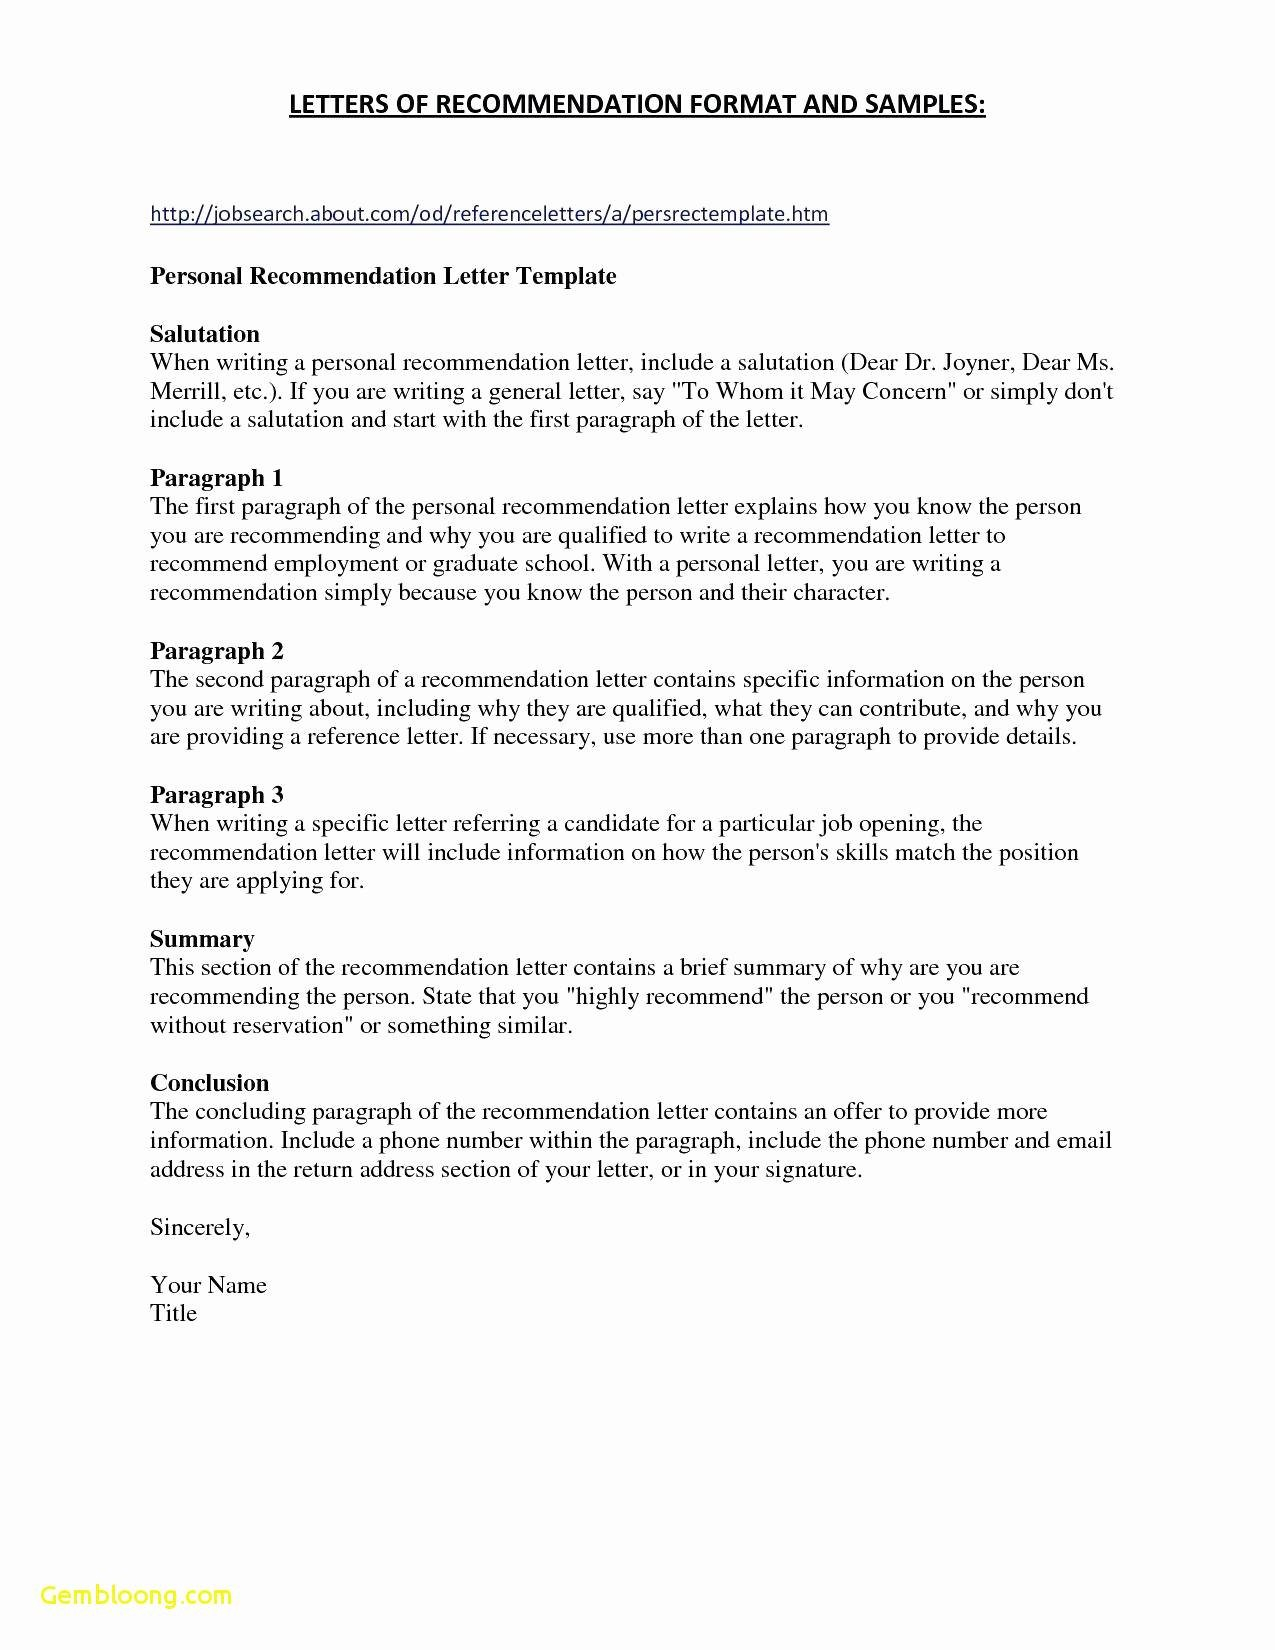 Offer to Purchase Letter Template - Ceo Employment Contract Template